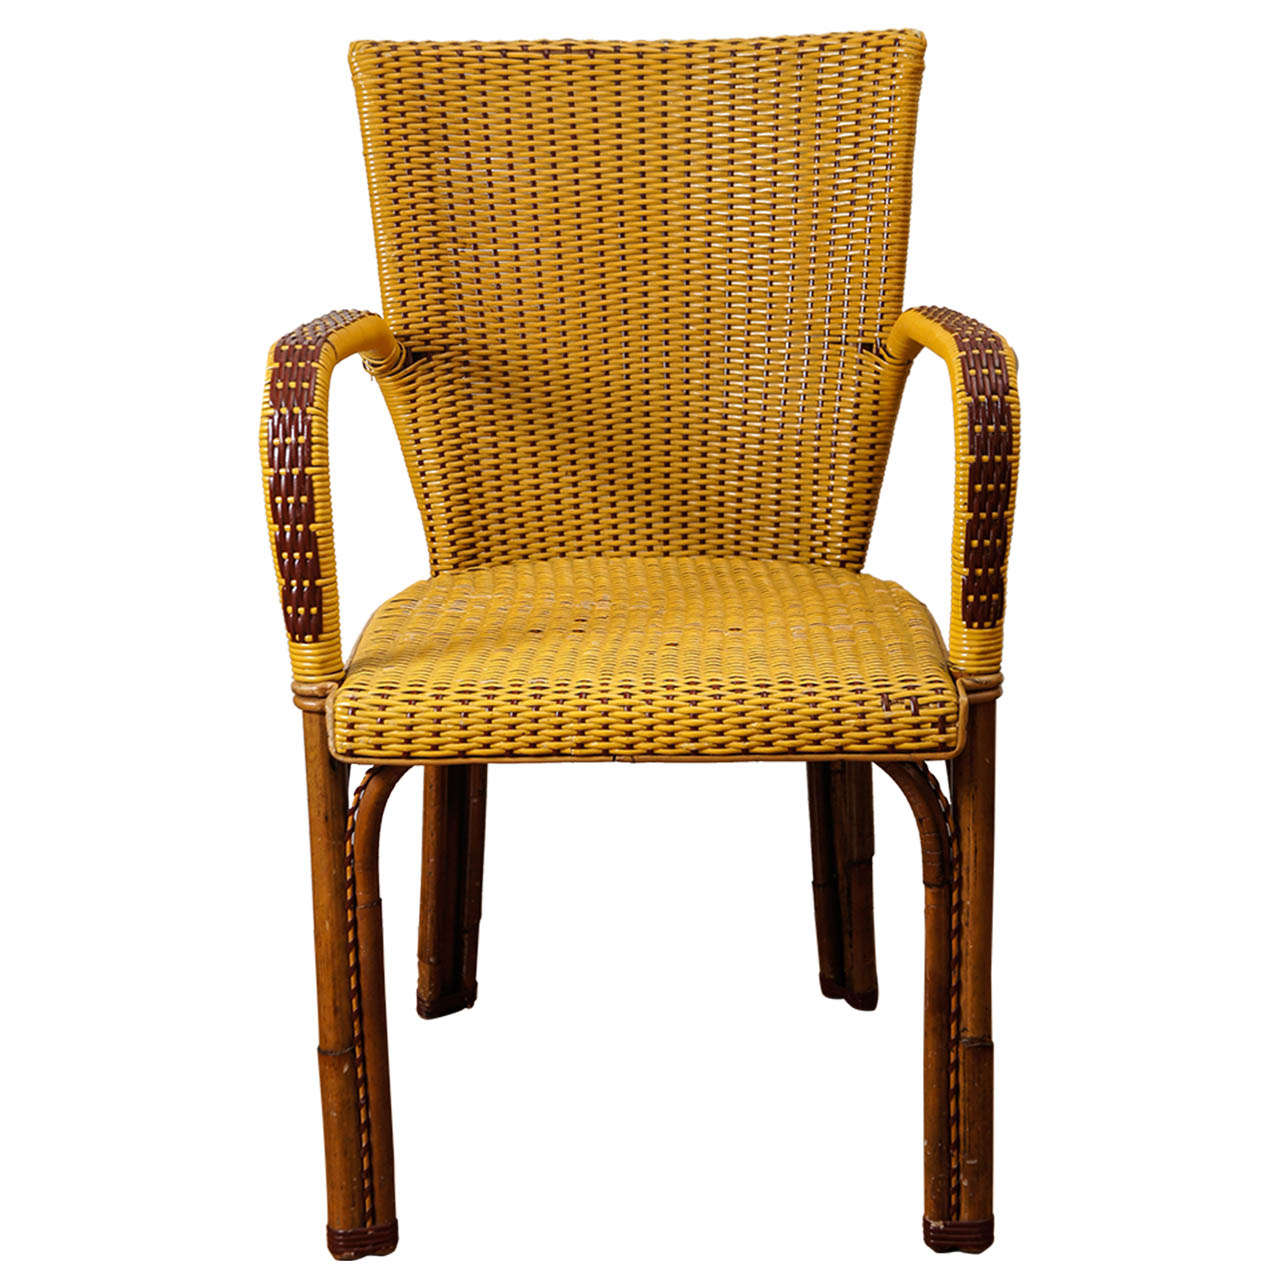 French Bistro Chair French Wicker Bistro Chairs At 1stdibs